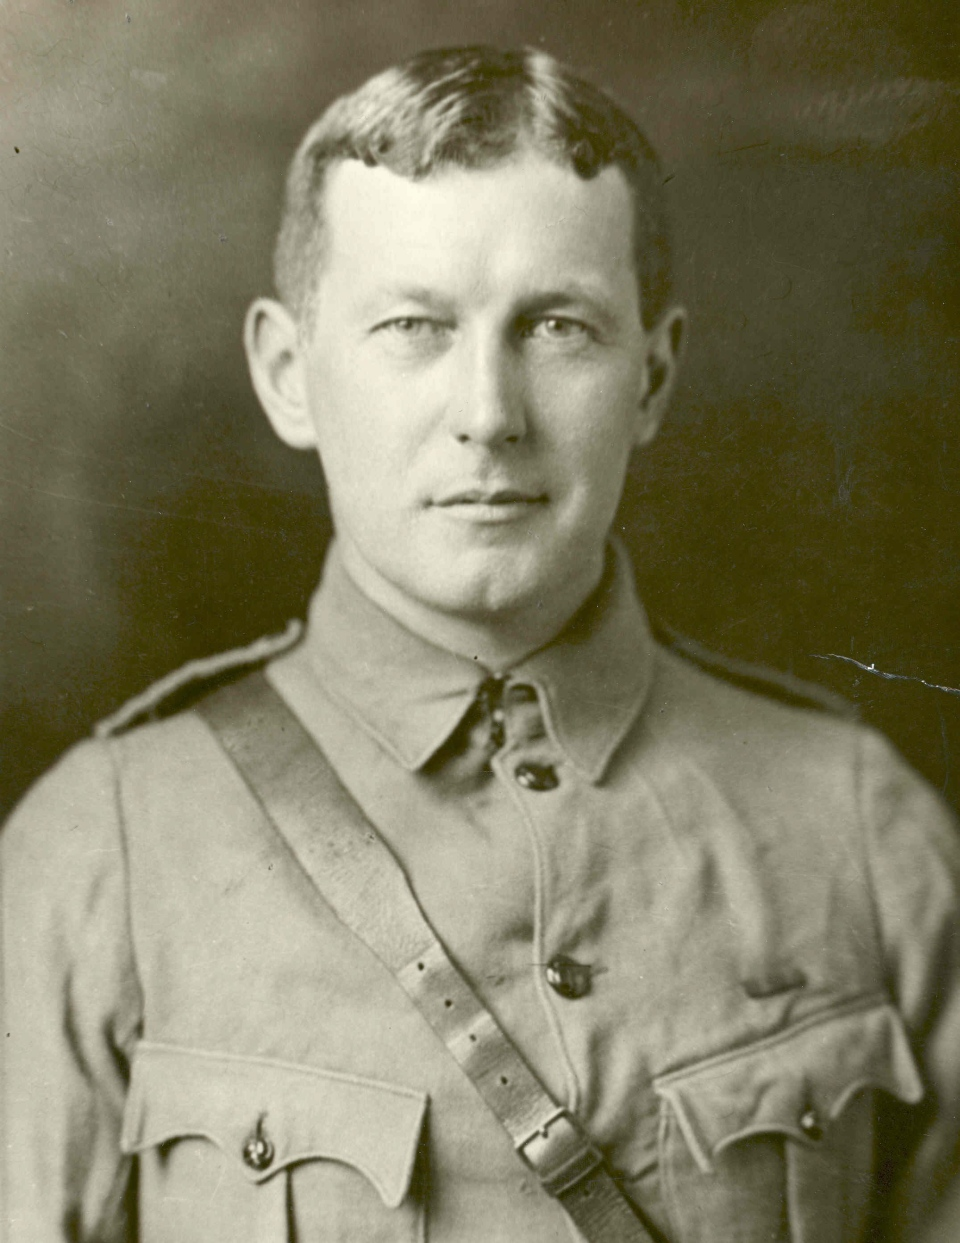 Lt.-Col. John McCrae, author of the famous poem In Flanders Fields, is shown in this undated image. (CP PICTURE ARCHIVE / National Archives of Canada)